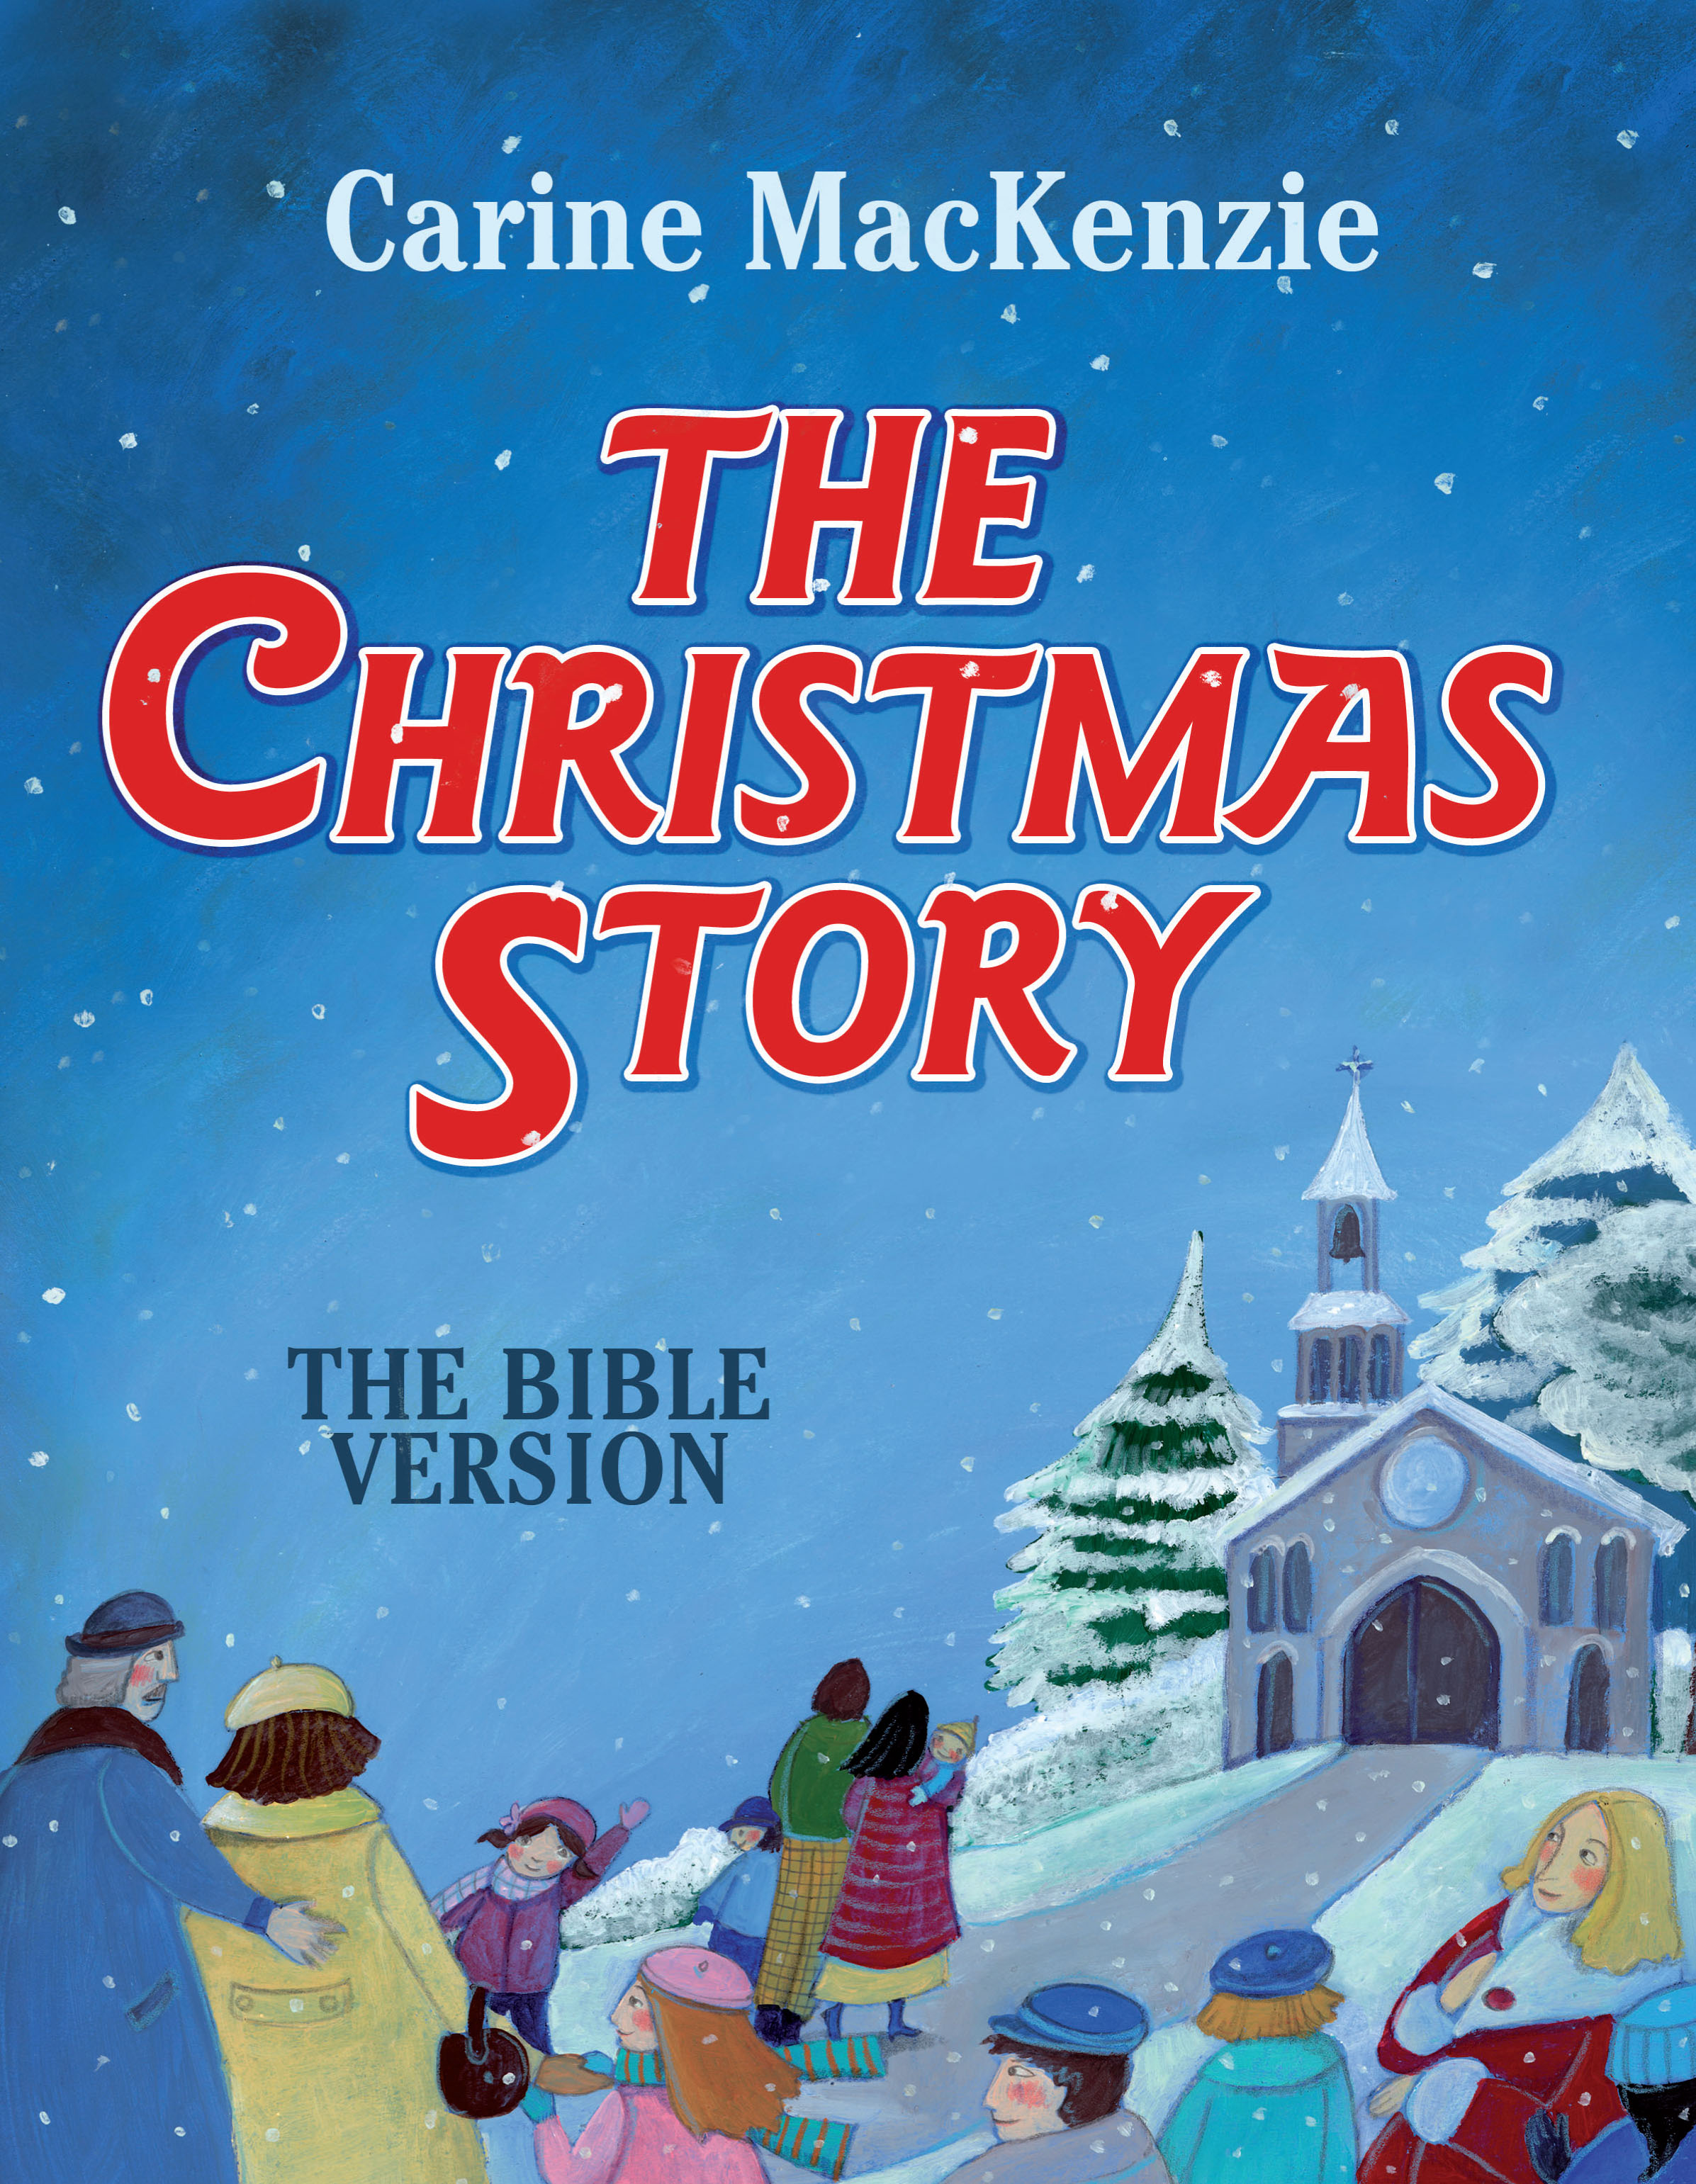 Christmas Story From The Bible.The Christmas Story The Bible Version By Carine Mackenzie